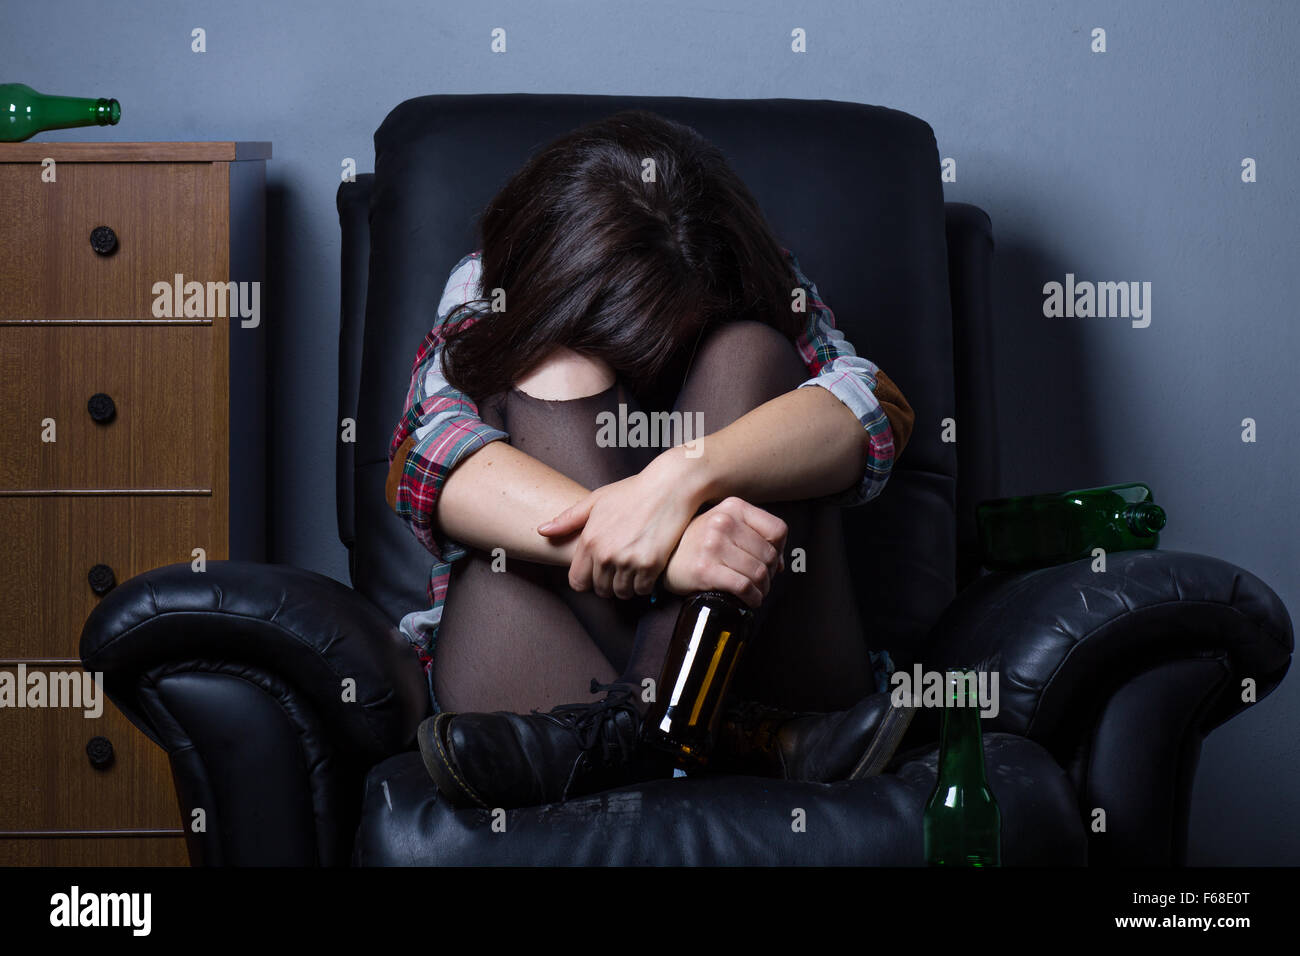 Sad Drunk Woman on Armchair with Empty Bottles - Stock Image